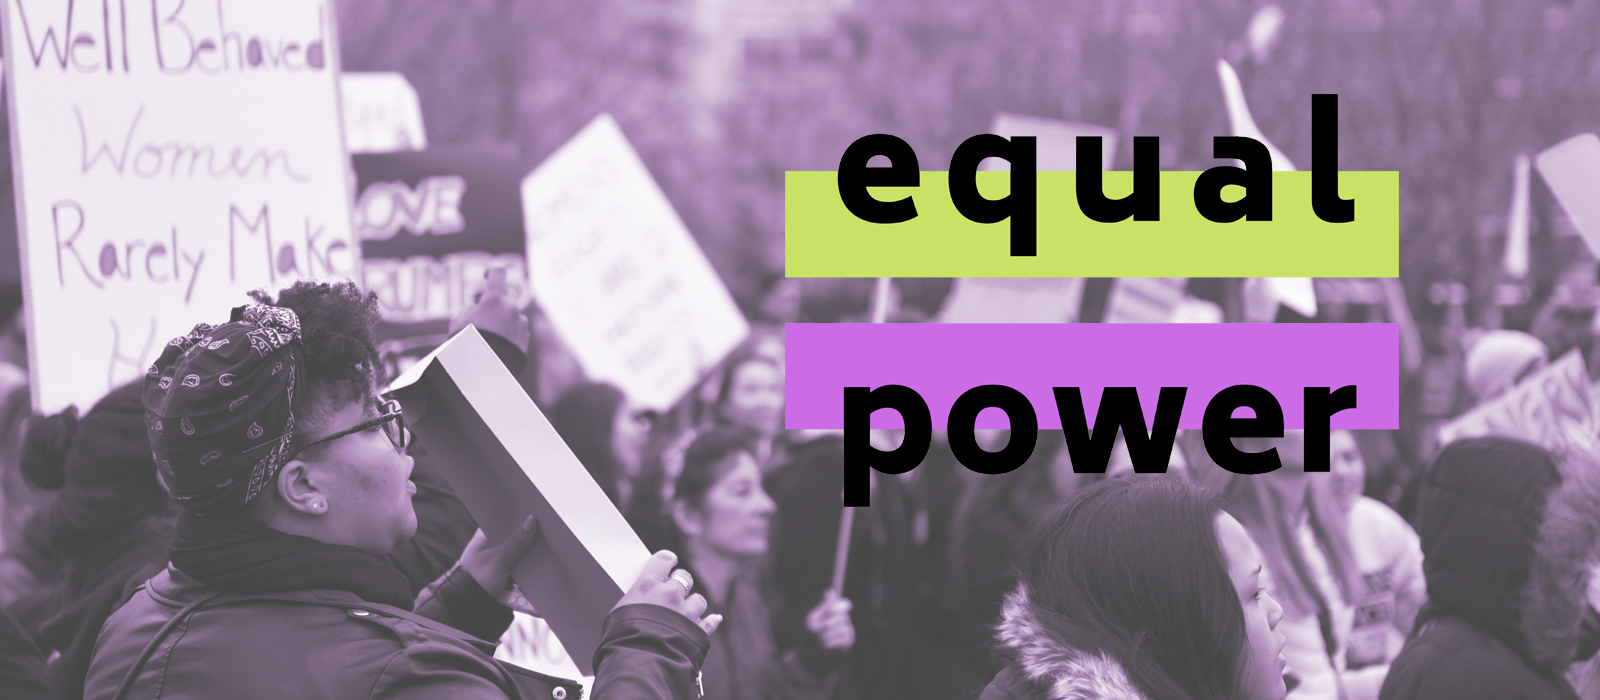 Fawcett launches 'Equal Power', a coalition to transform women's representation